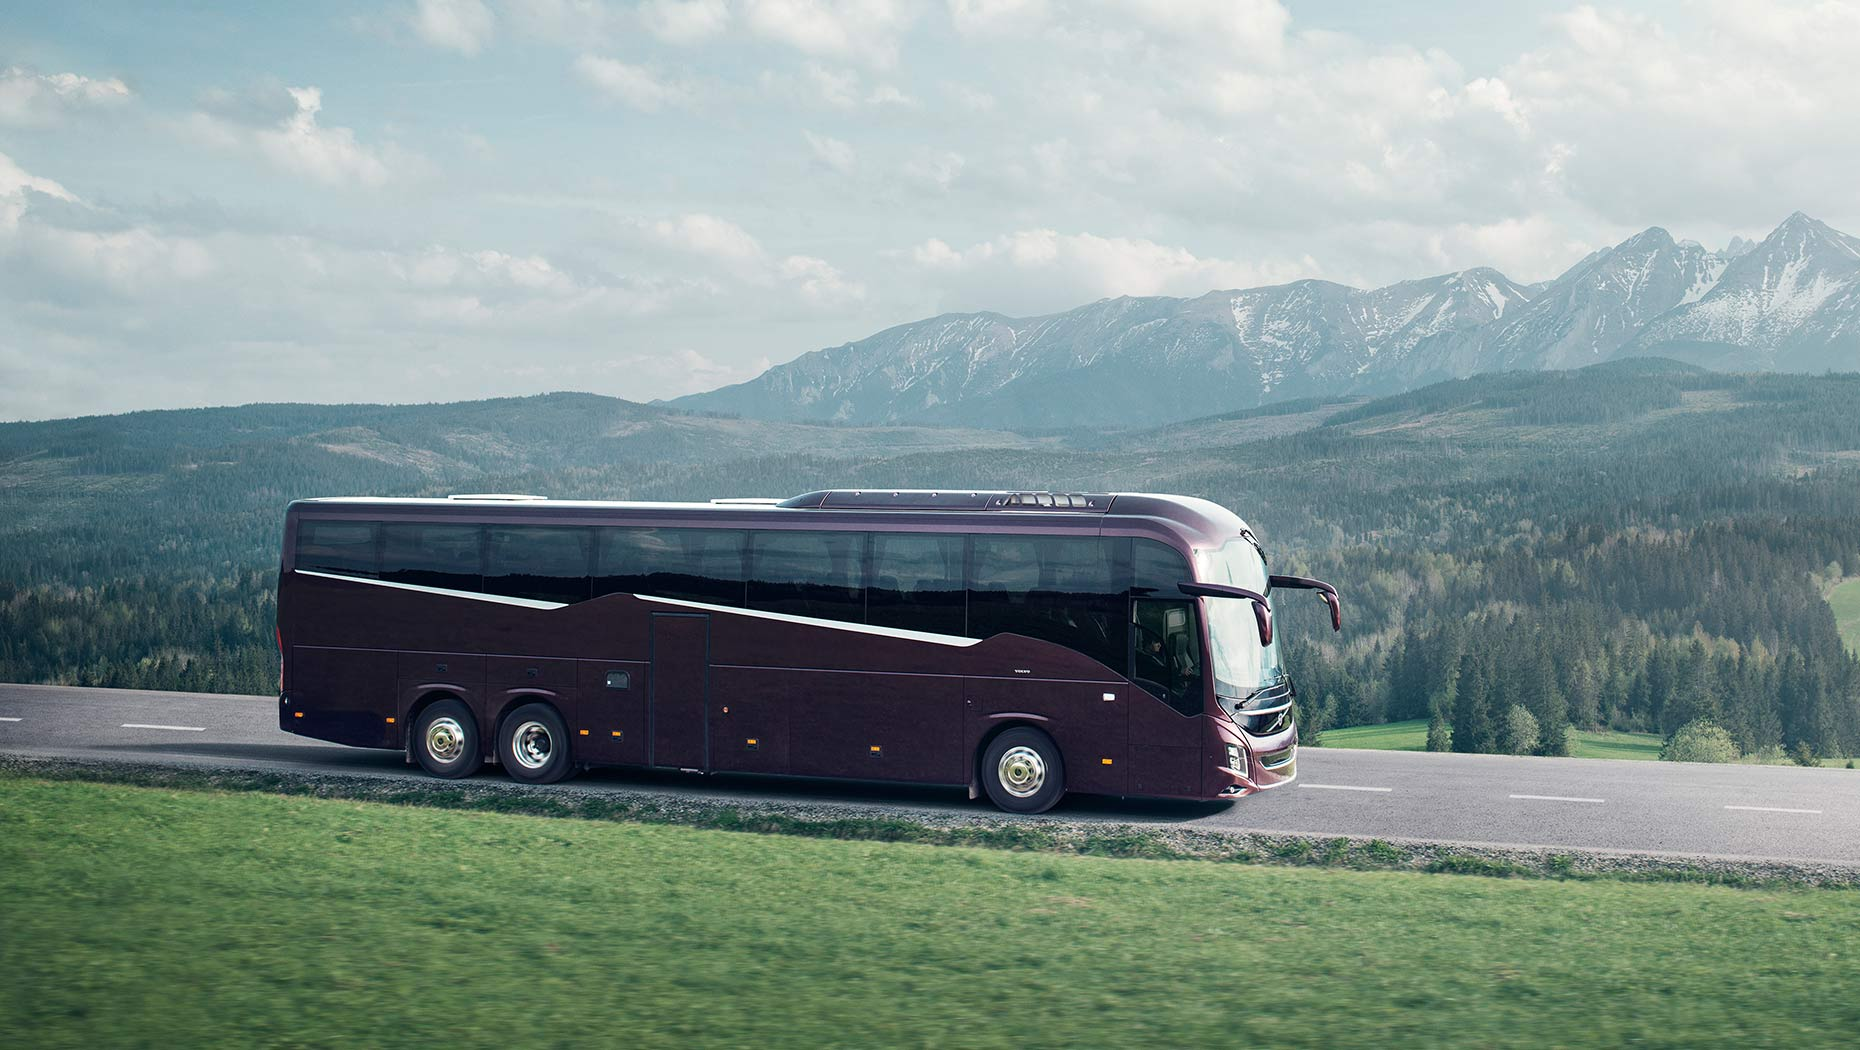 volvo bus images gallery